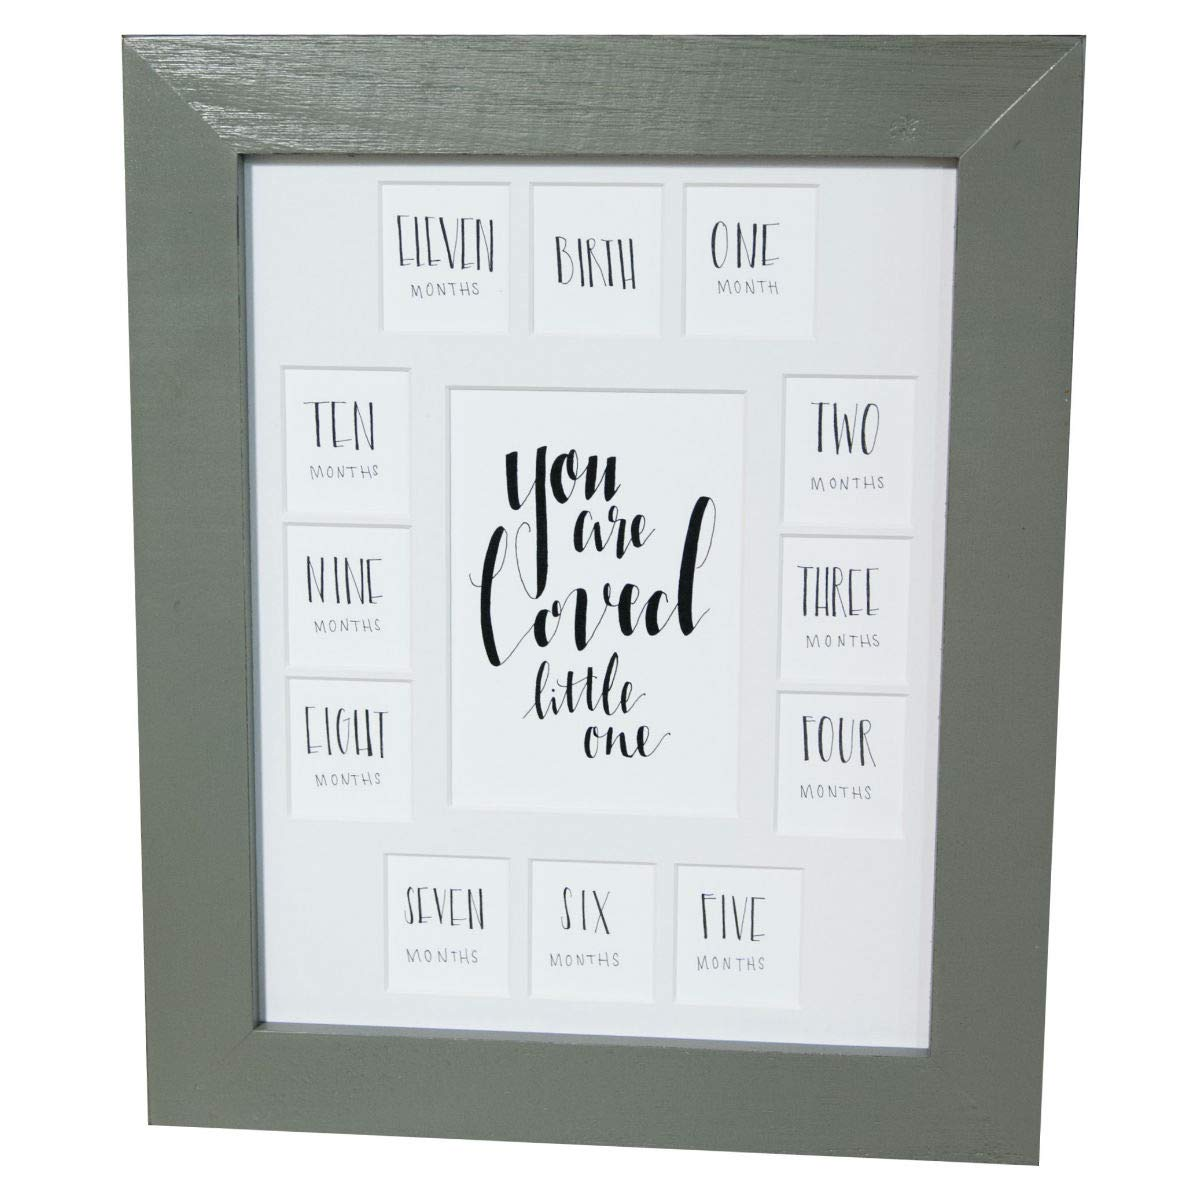 ''You are Loved Little One'', First Year Picture Frame with White Mat 11x14 by All Things for Mom